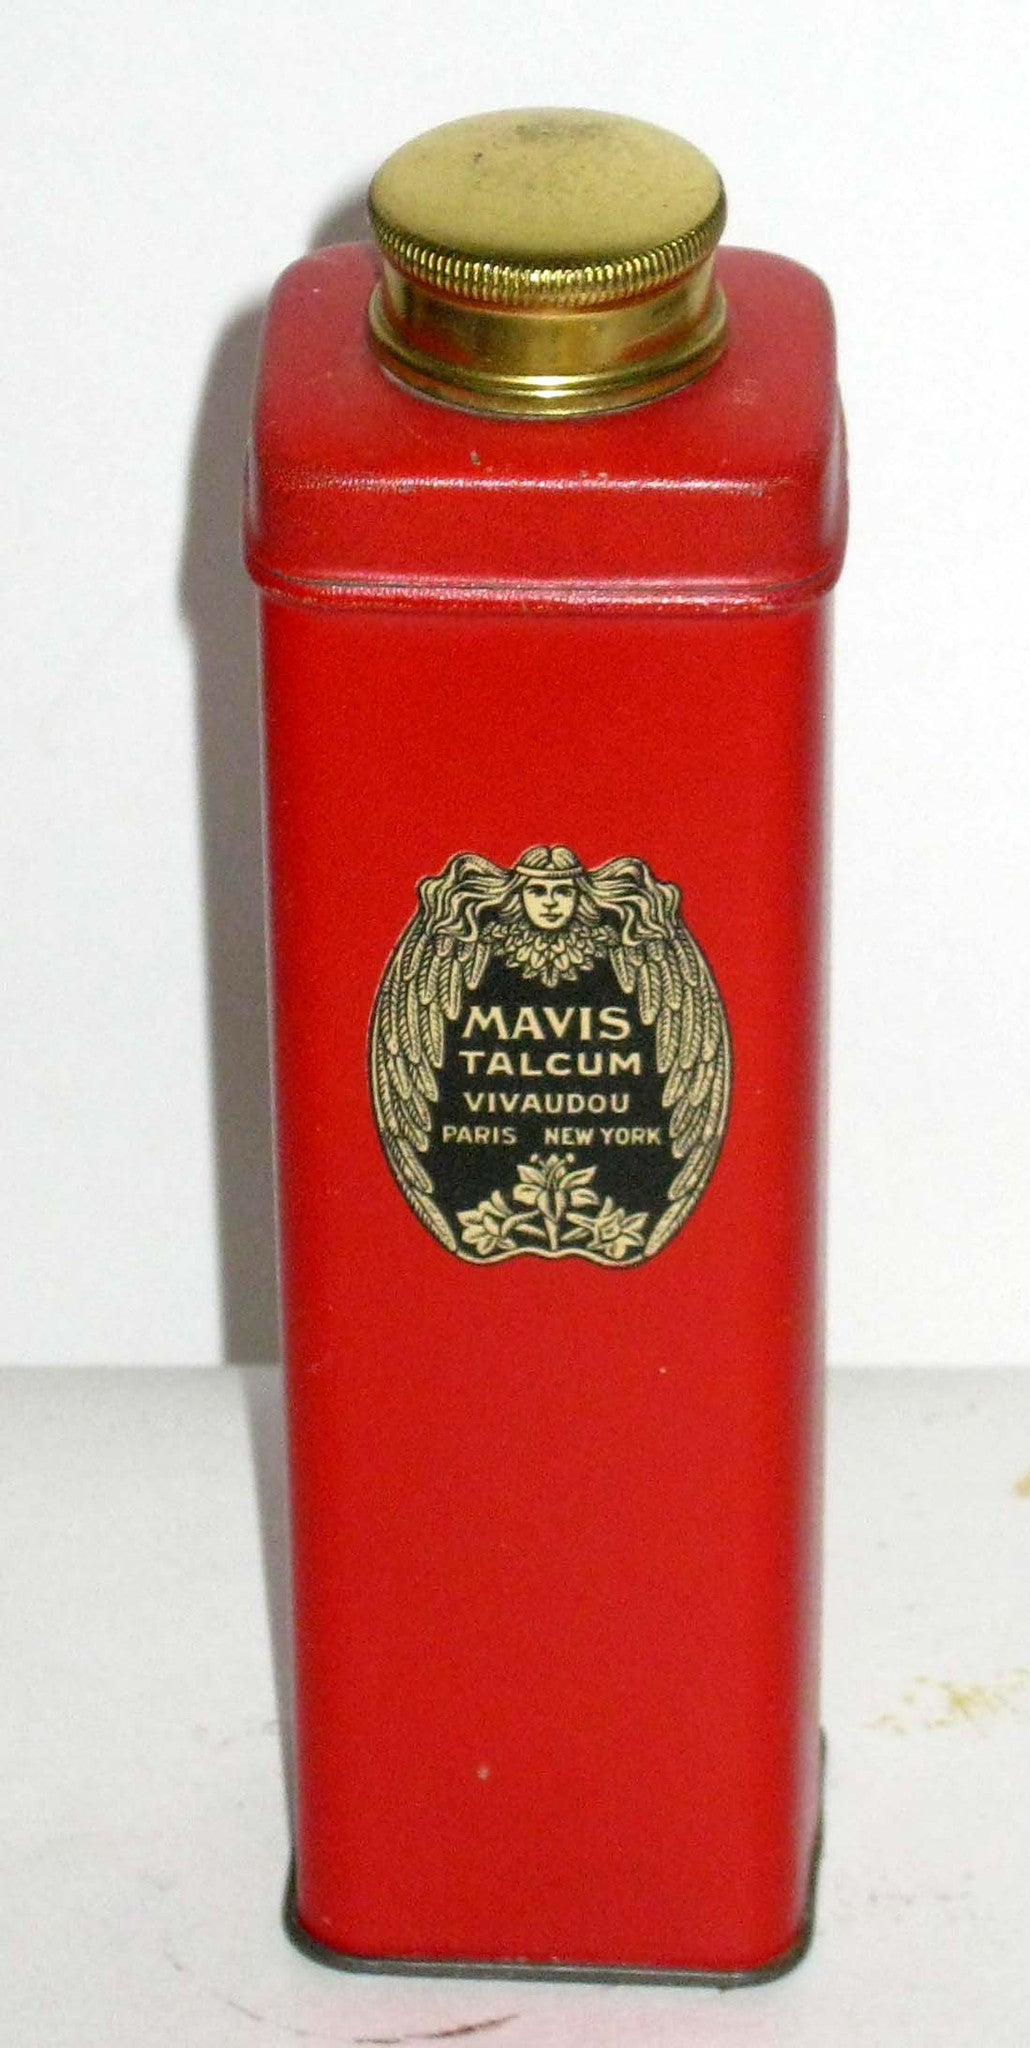 Vivaudou Mavis Talcum Powder Tin